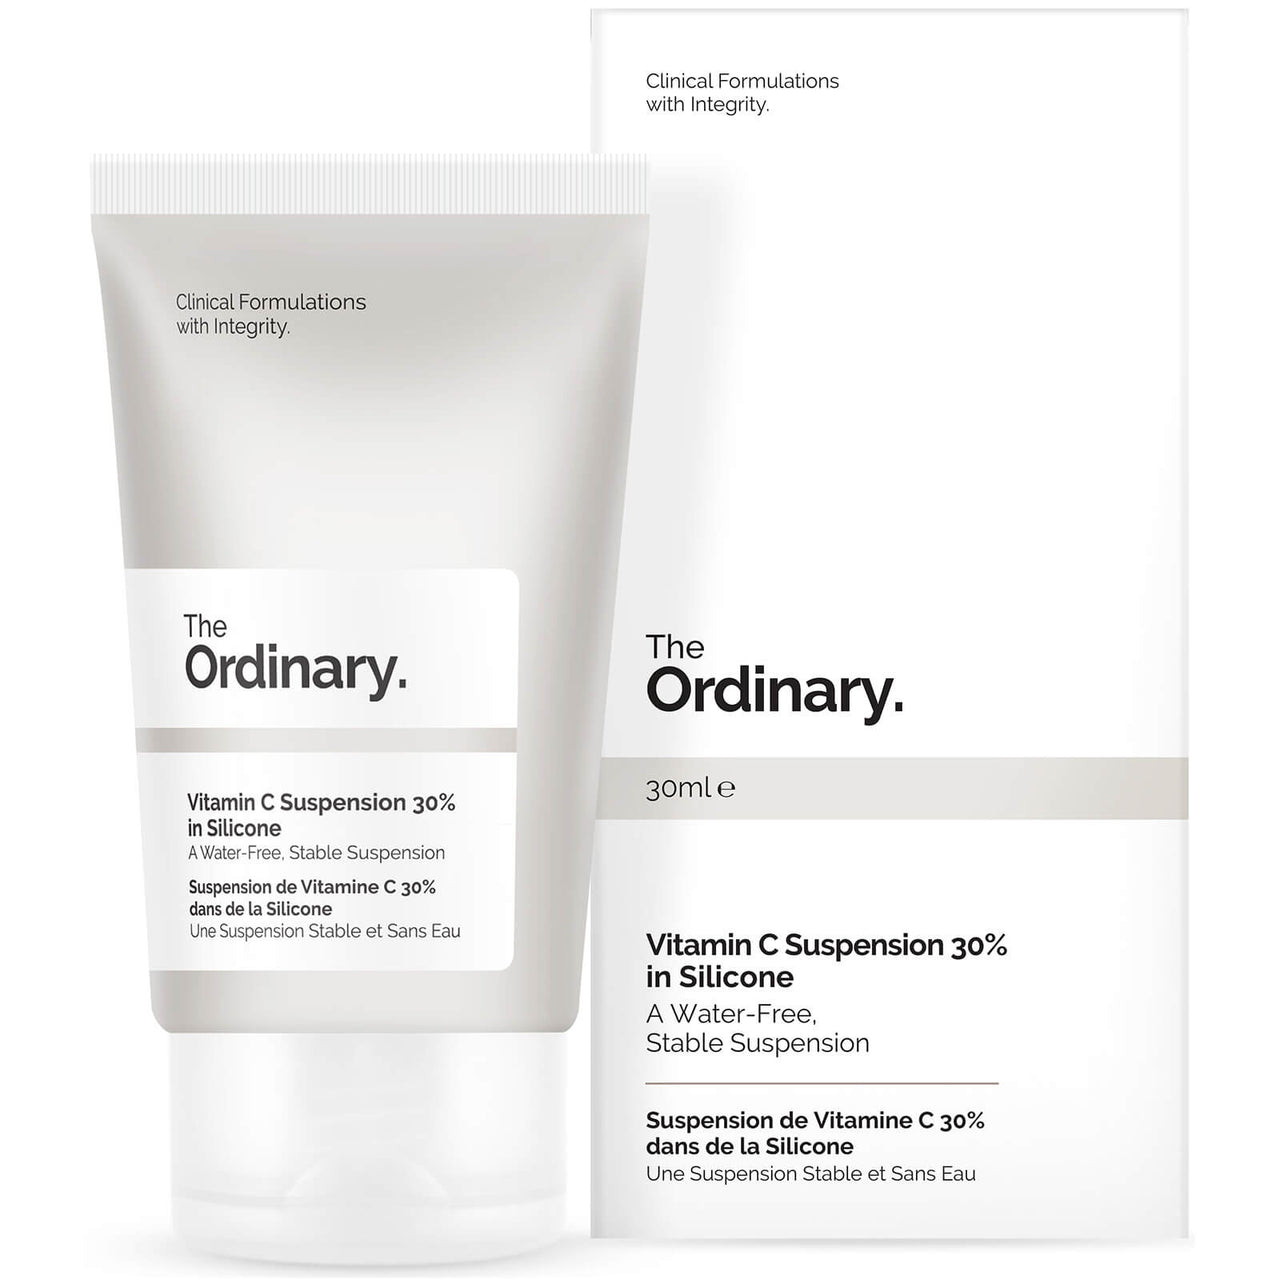 The Ordinary- Vitamin C Suspension 30% in Silicone